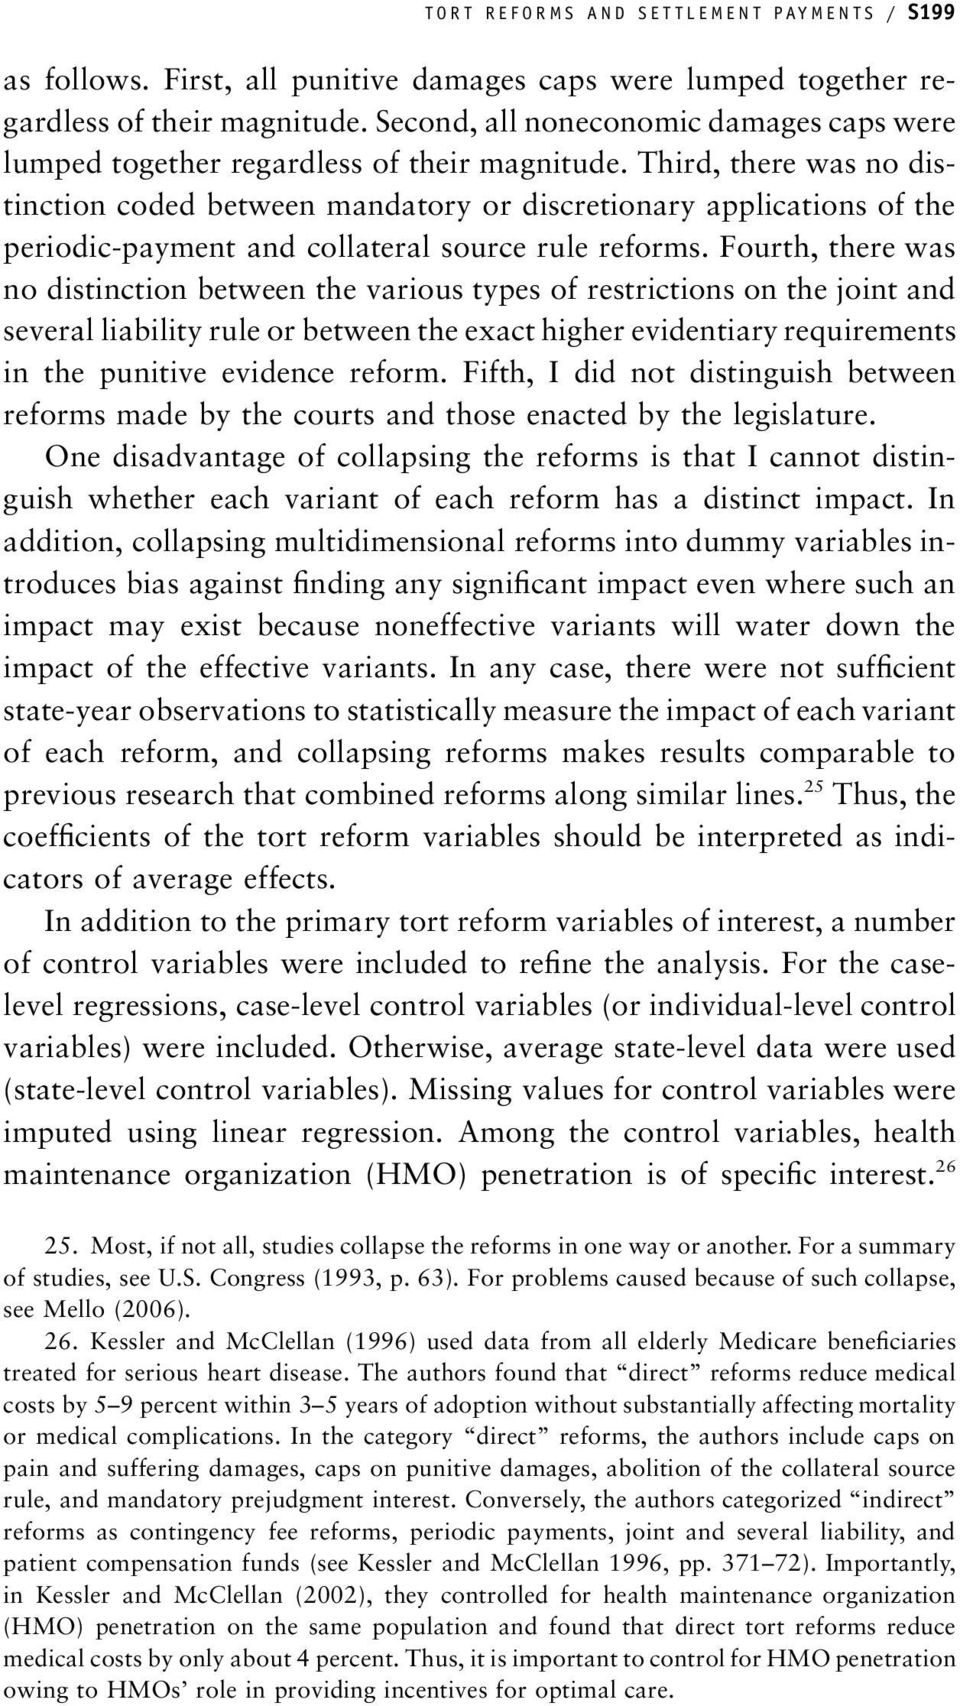 Third, there was no distinction coded between mandatory or discretionary applications of the periodic-payment and collateral source rule reforms.